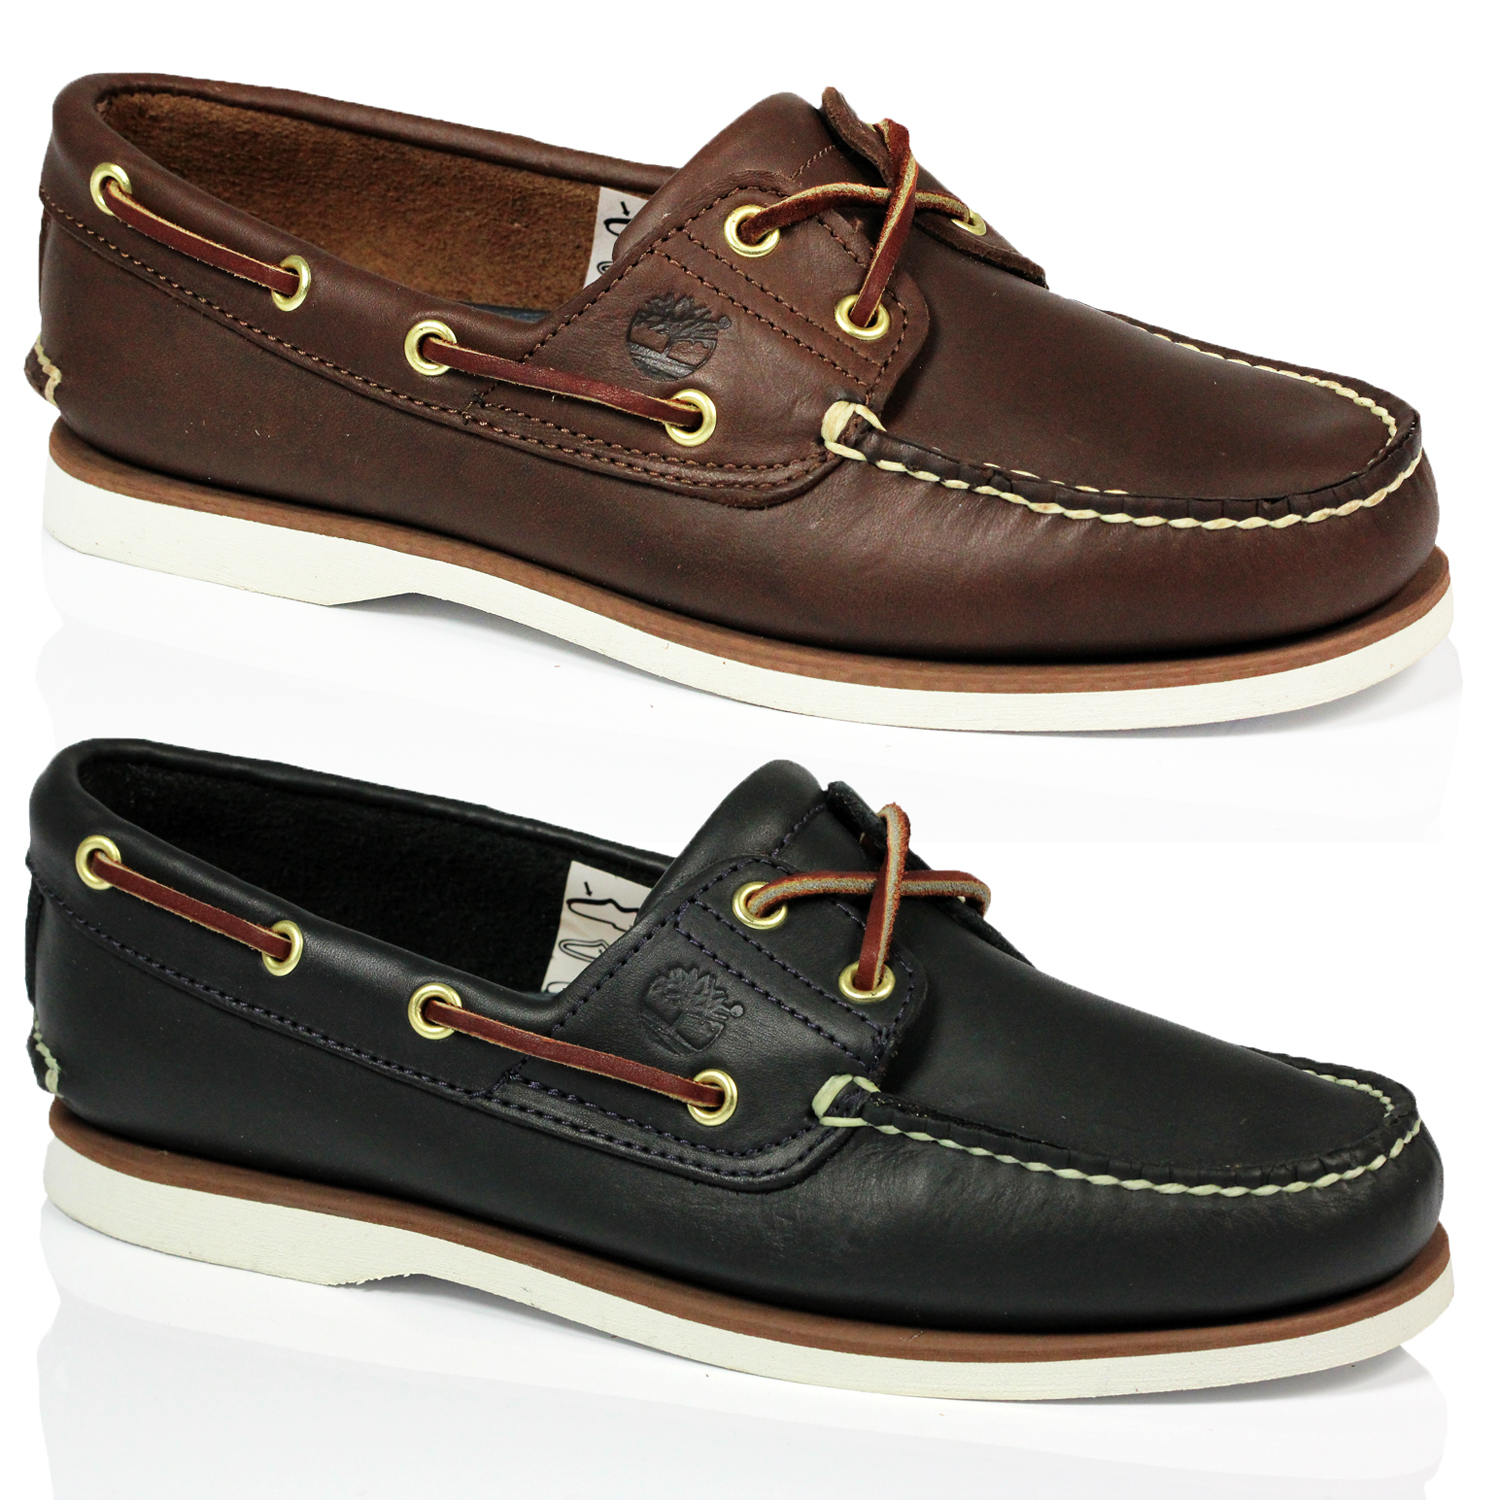 f2678a9364b8 MENS TIMBERLAND 74035 74036 CLASSIC LEATHER 2 EYE LACE UP BOAT SHOES ...